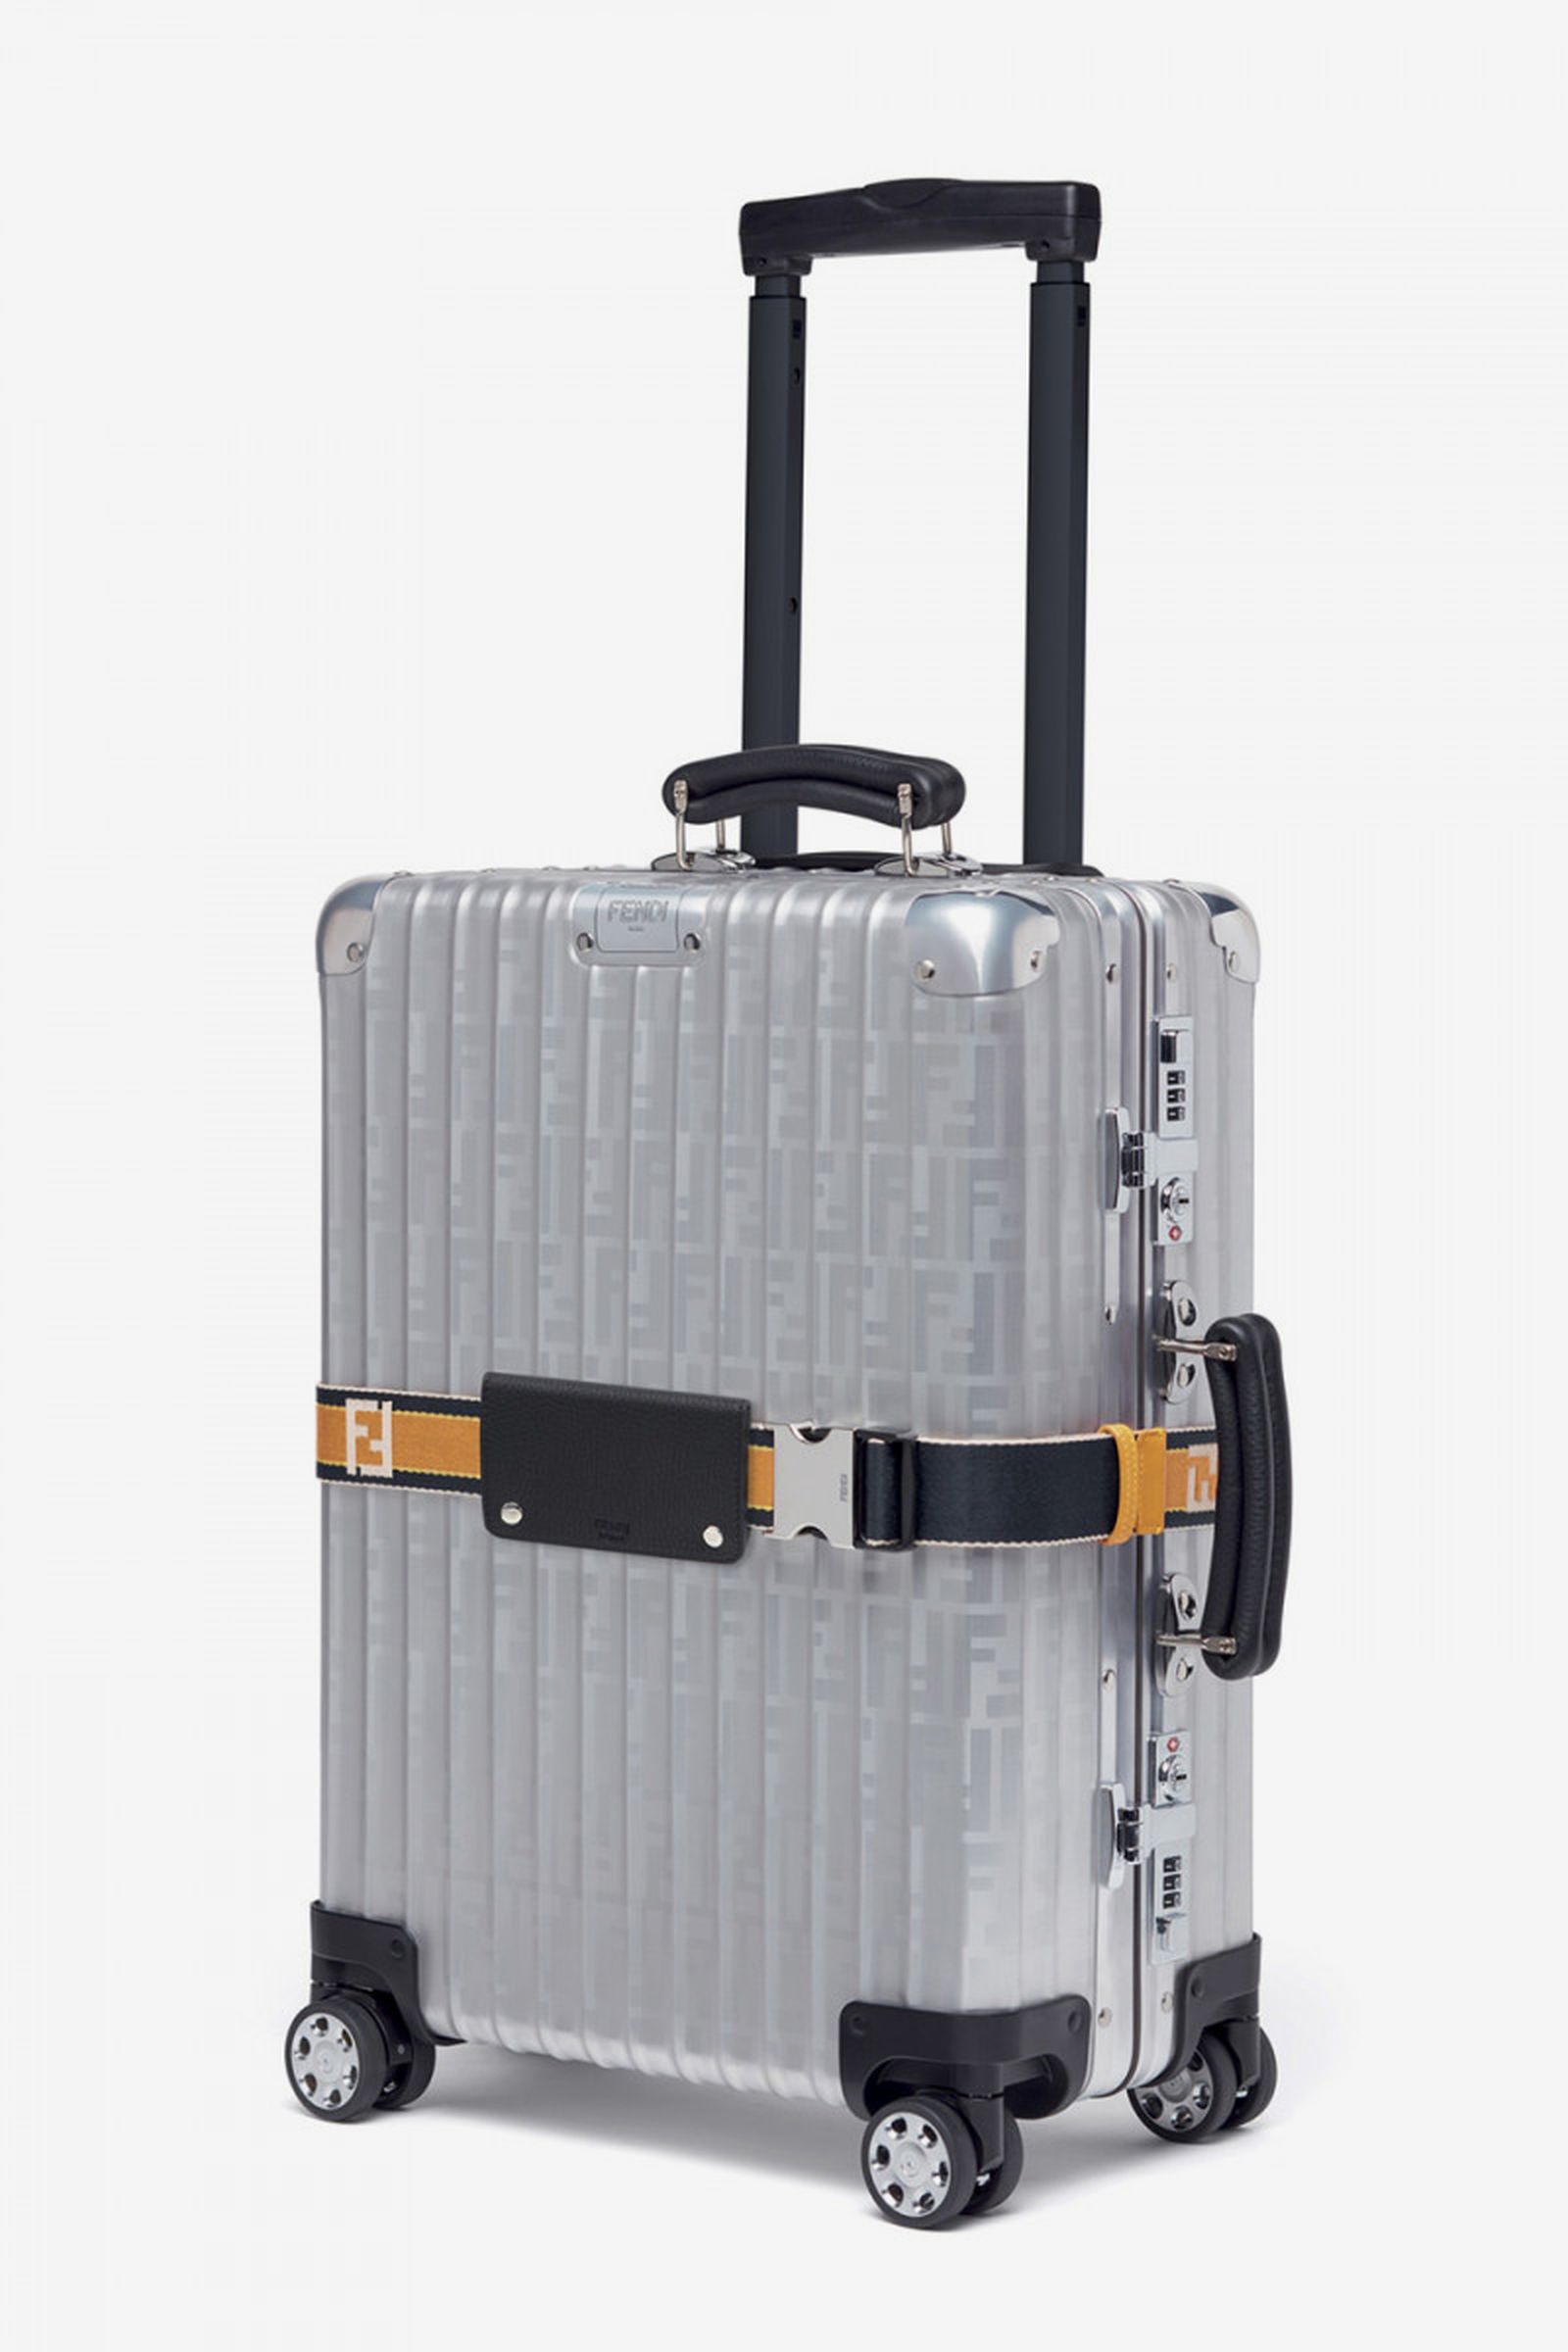 every rimowa collaboration details Anti Social Social Club Fendi OFF-WHITE c/o Virgil Abloh